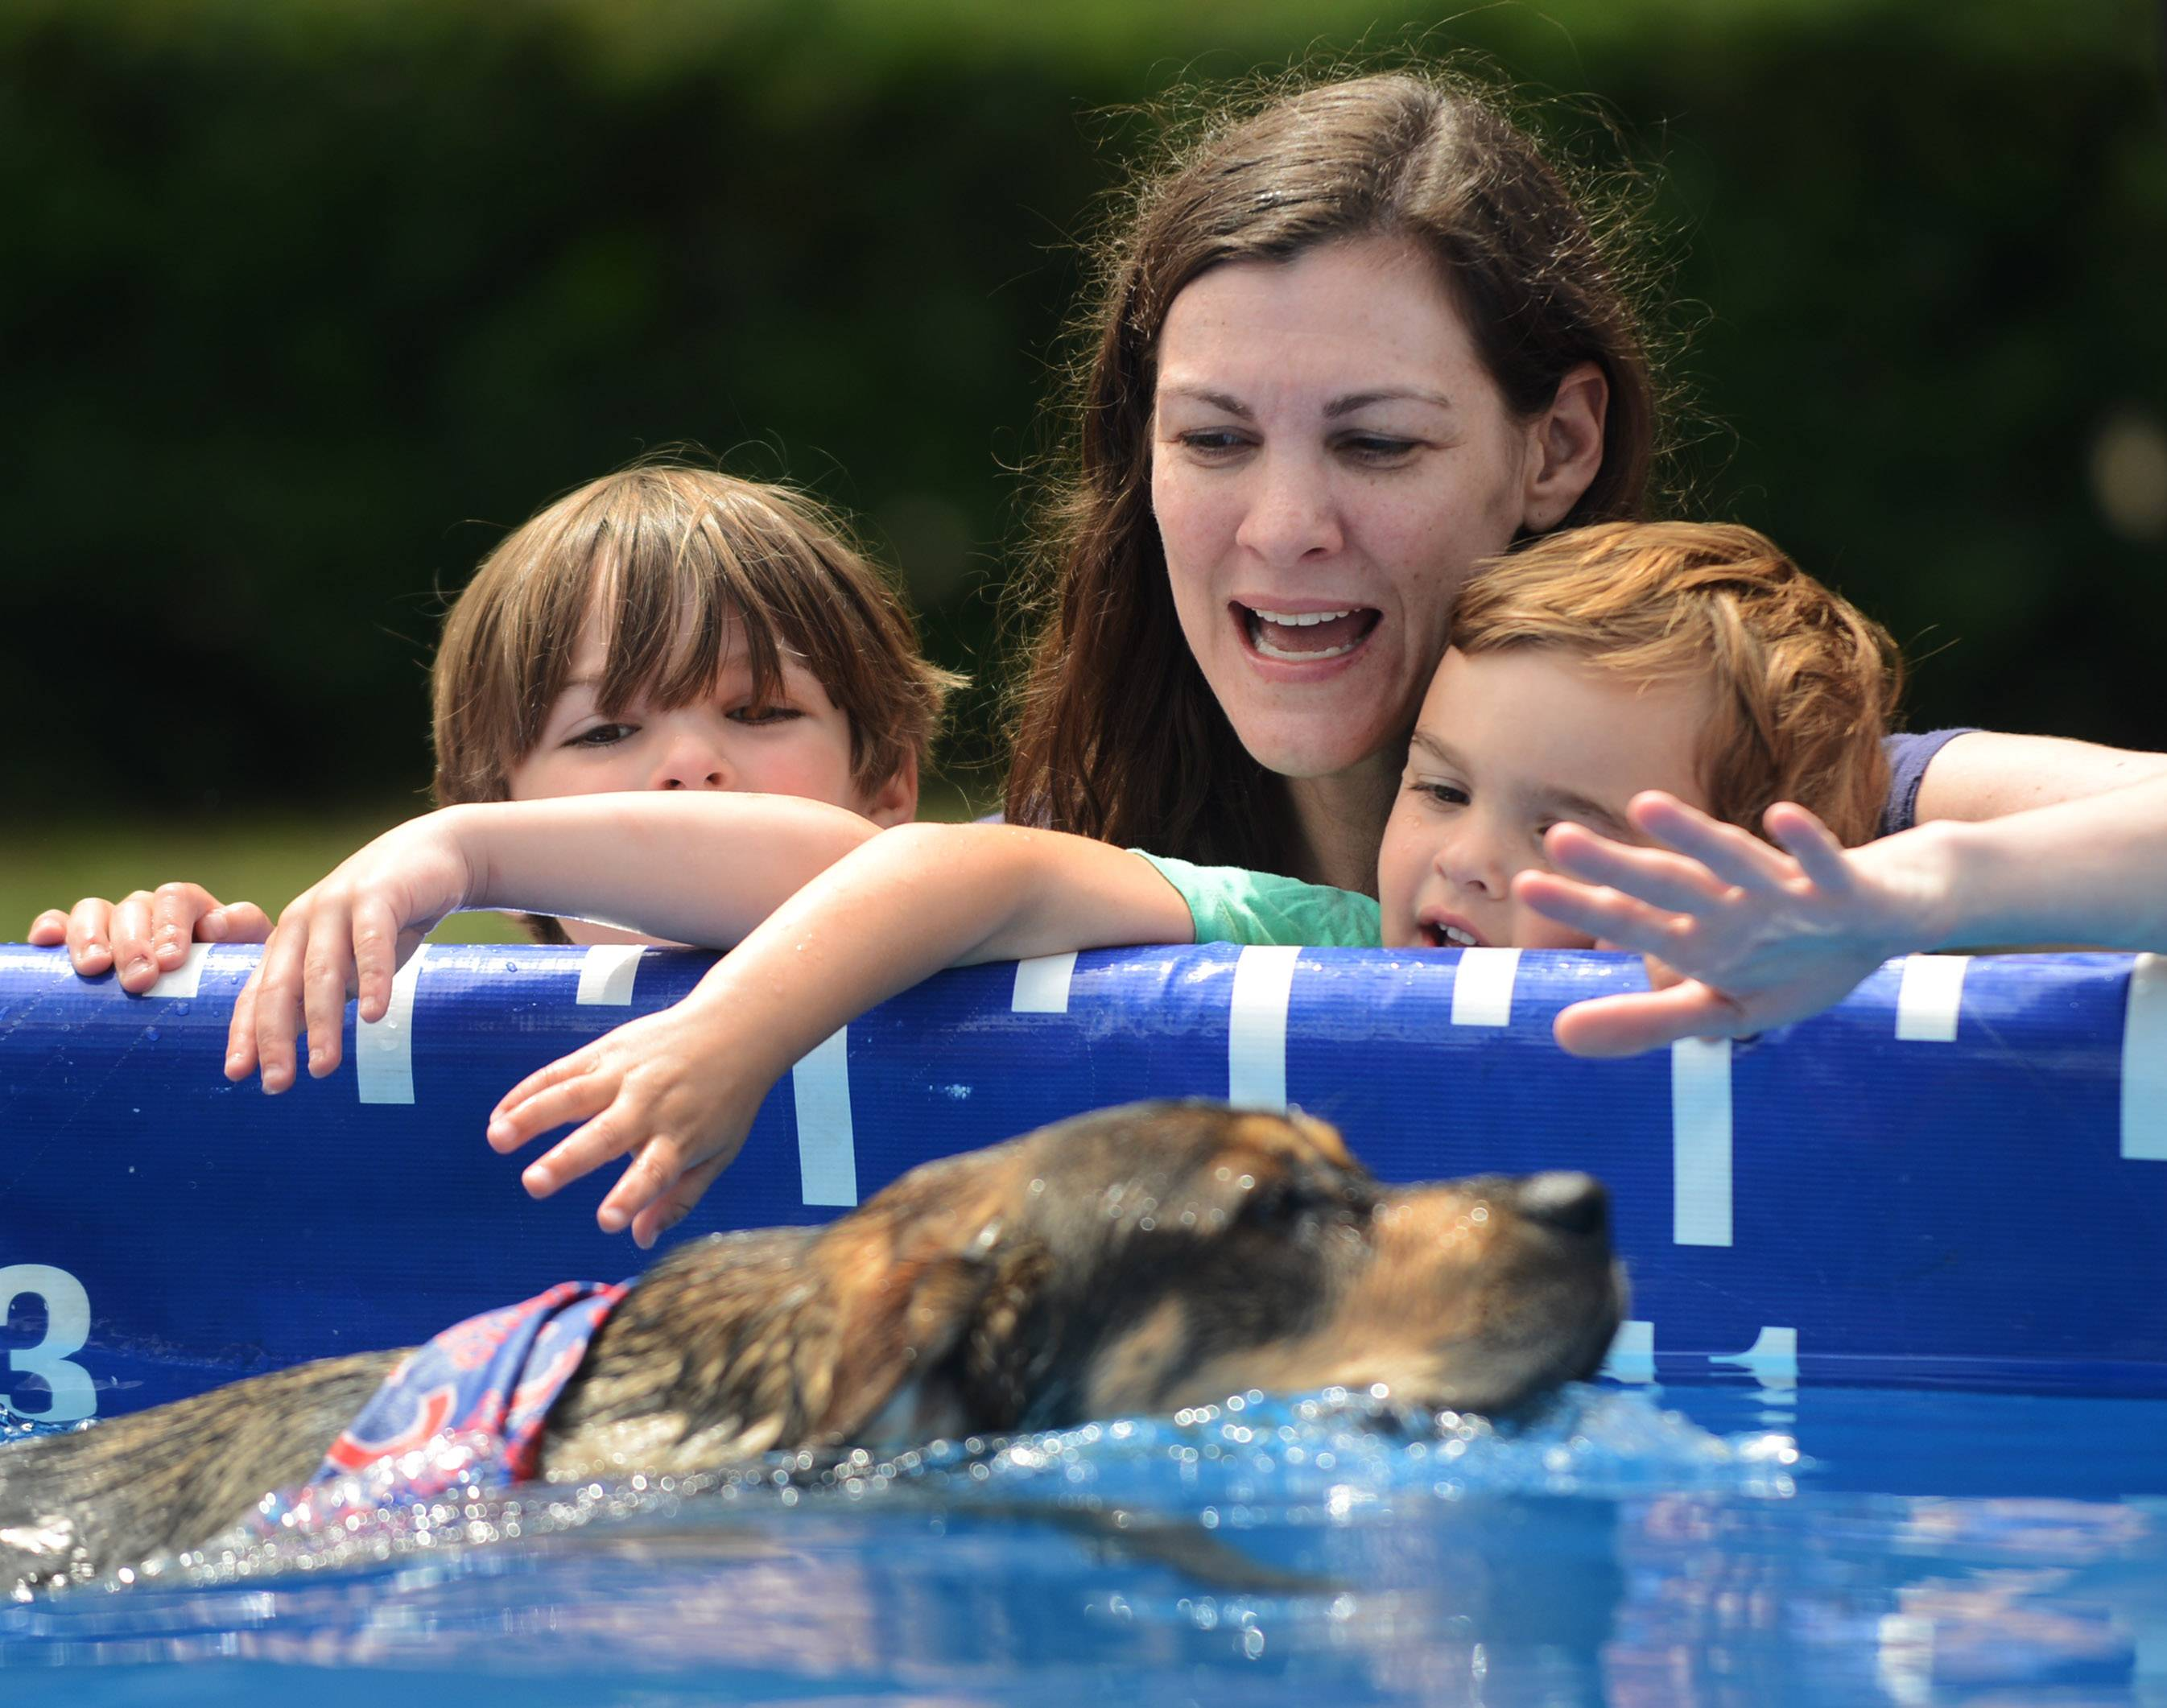 Laura Guarnieri of Lake Bluff, and her sons, Sam, 5, left, and Charlie, 3, watch a dog swim past in a portable pool during the Dog Days of Summer event in Libertyville Saturday.